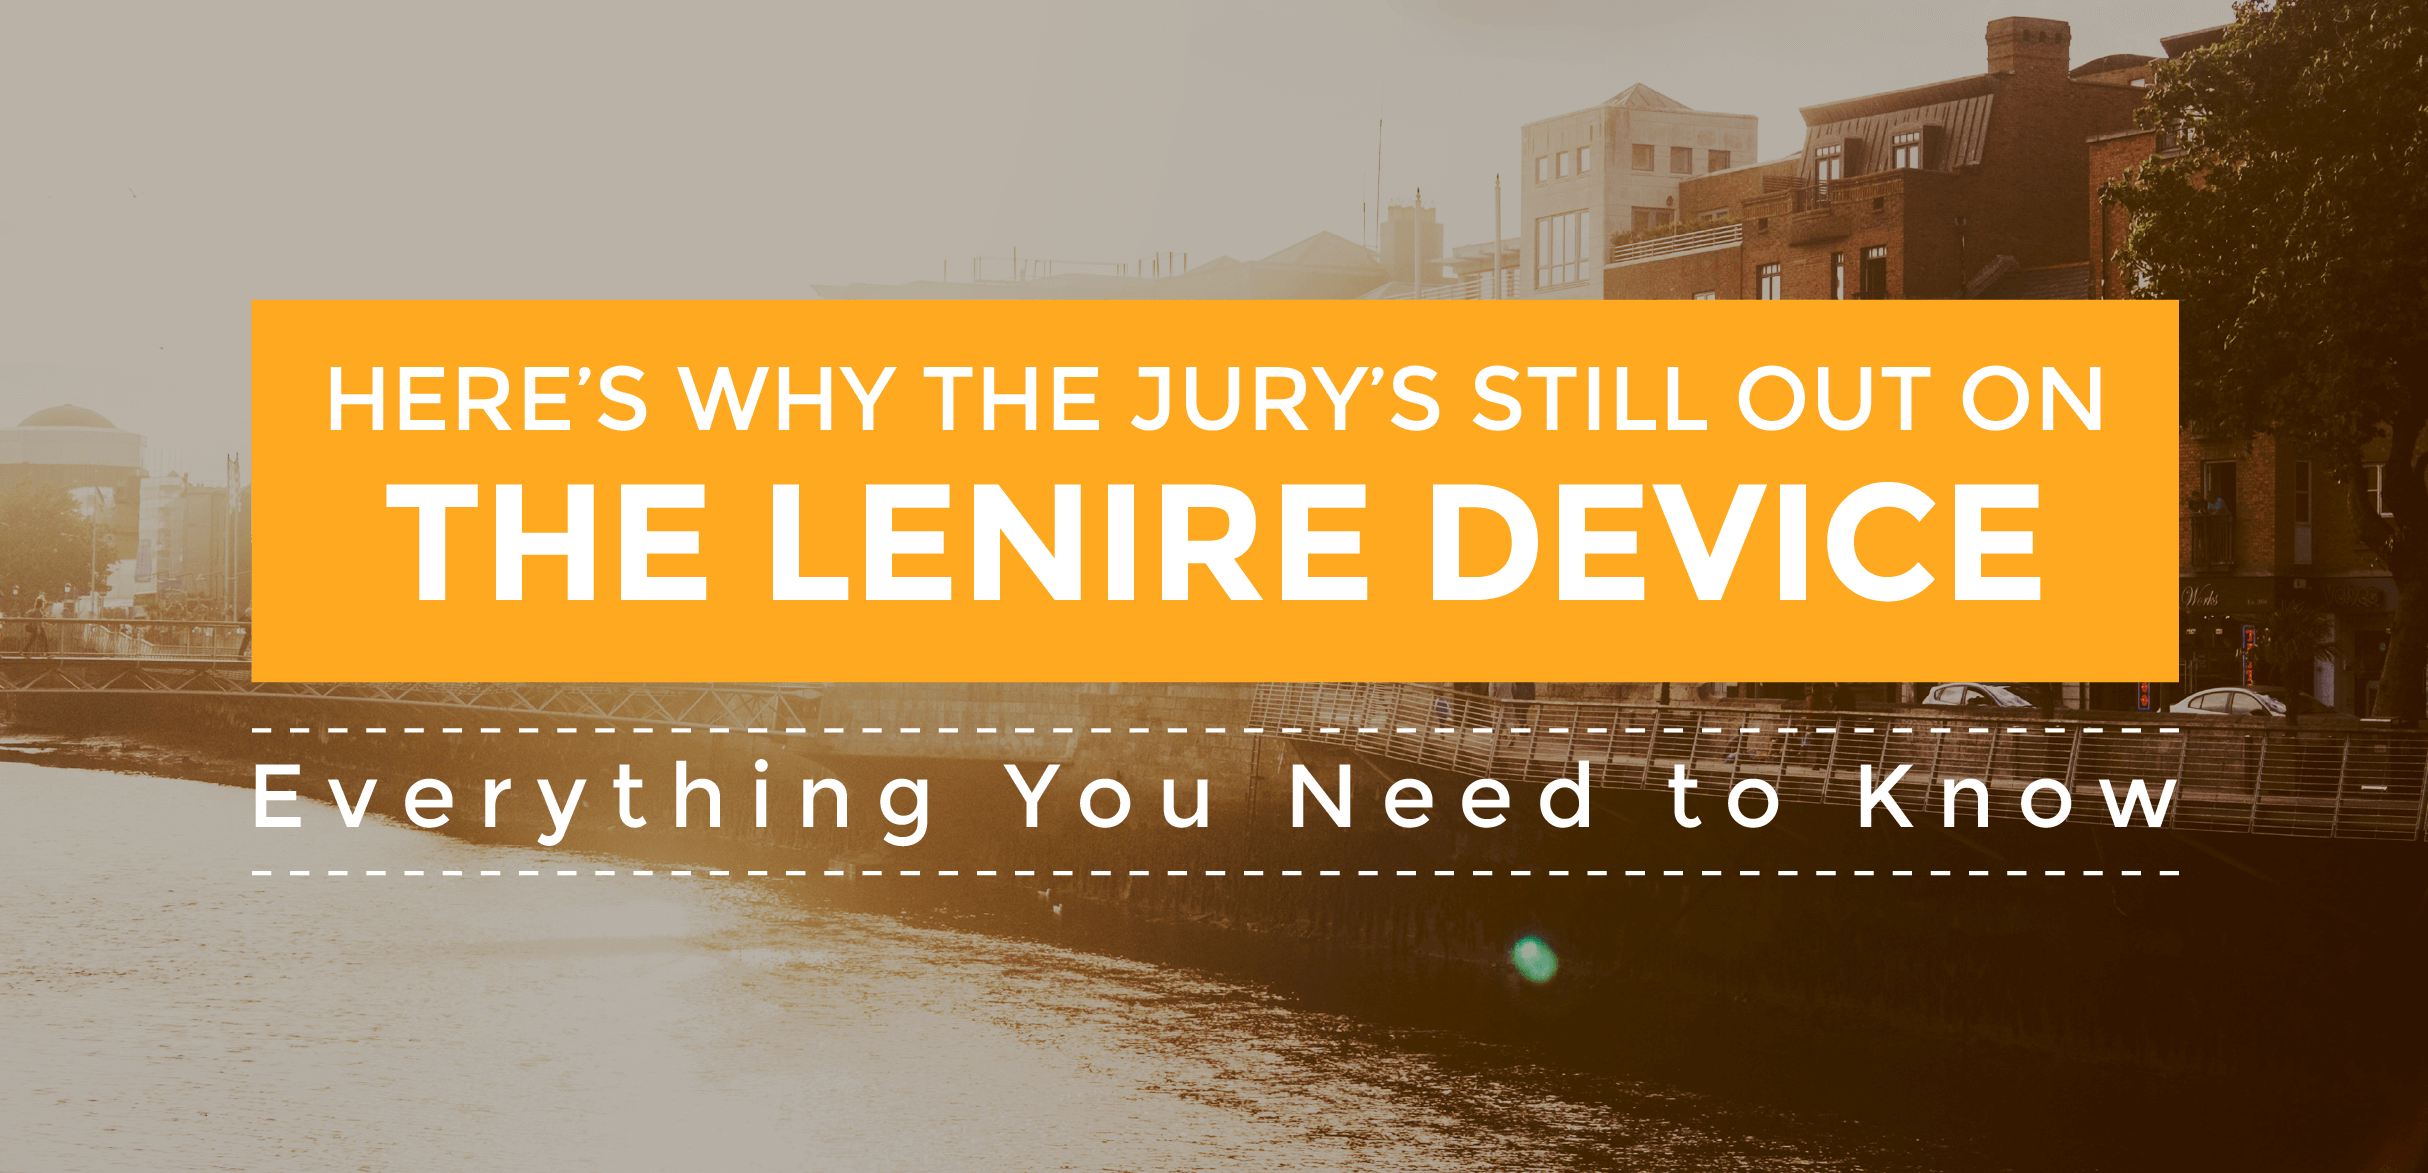 Here's Why the Jury's Still Out on Lenire